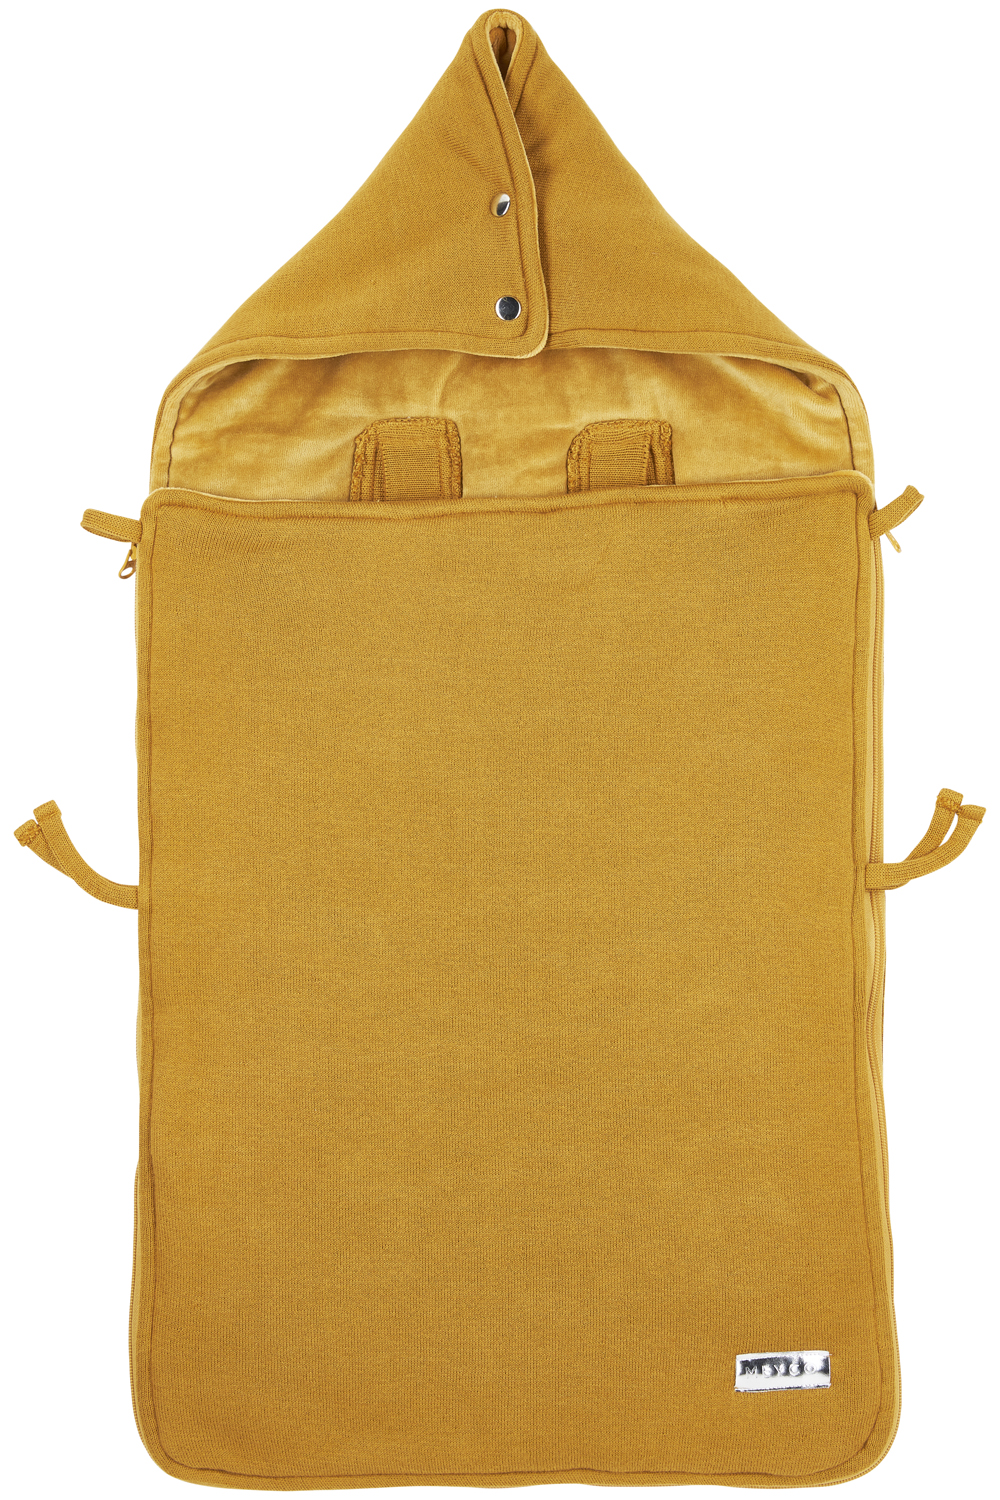 Fußsack Knit Basic - Honey Gold - 40x82cm